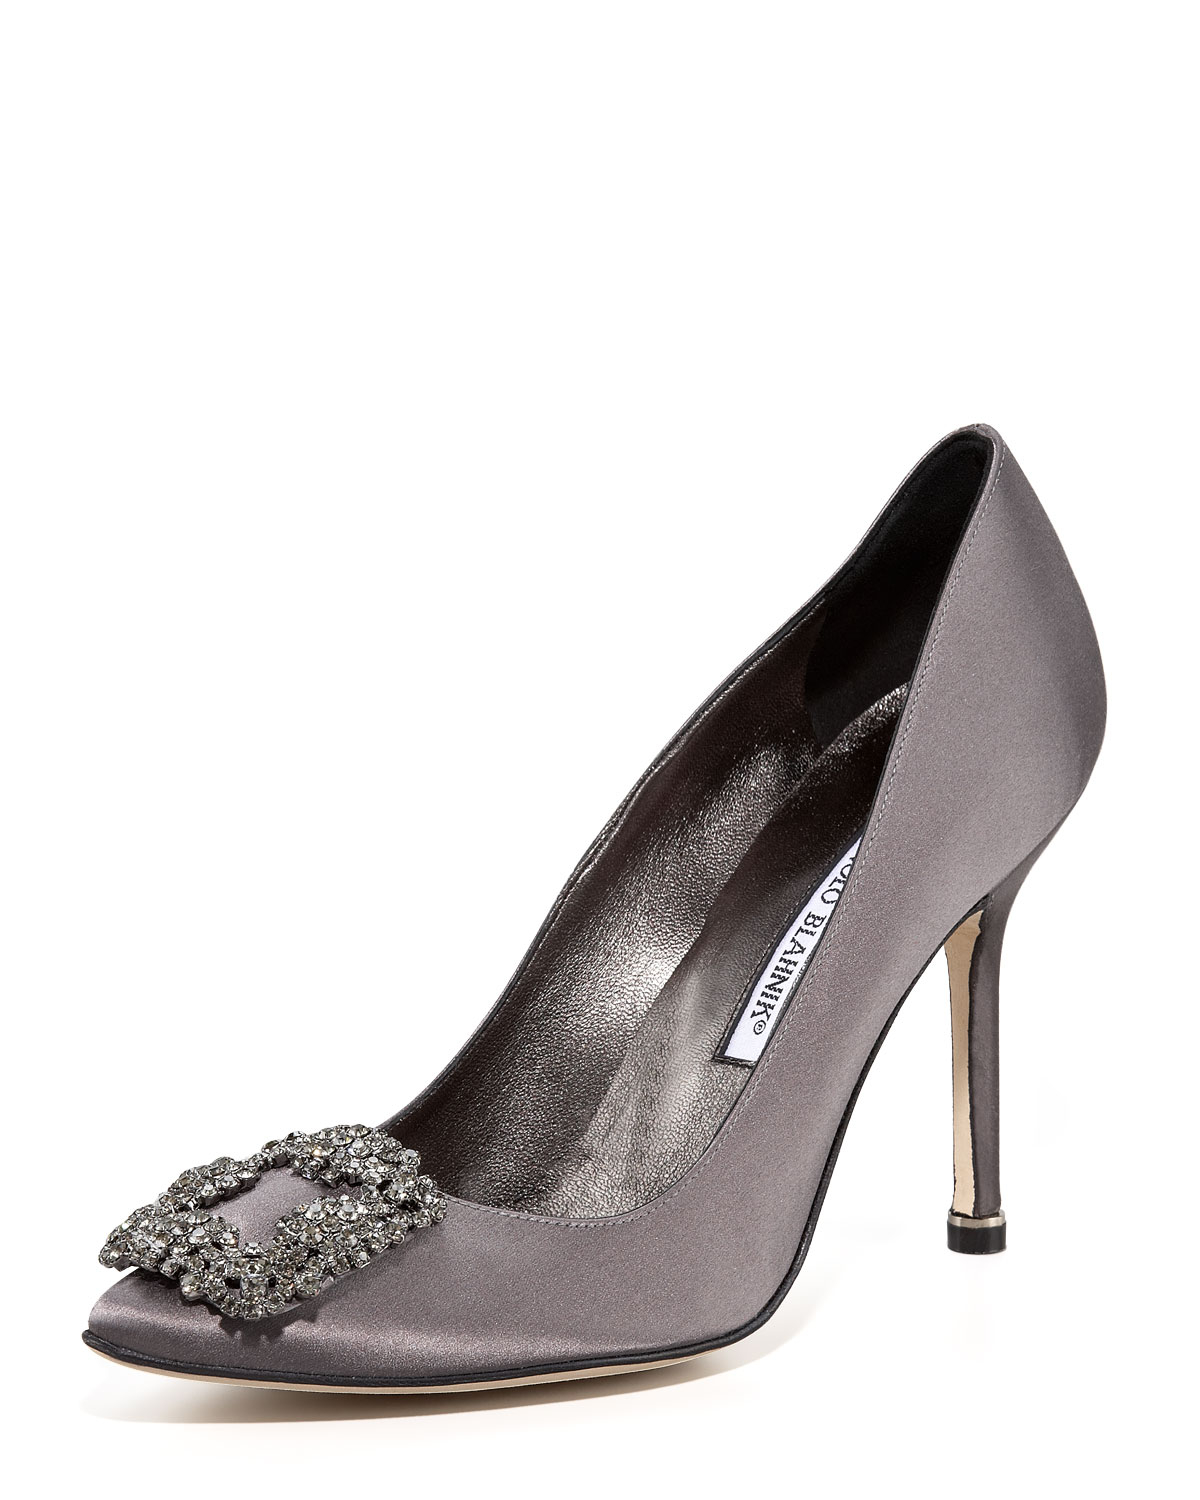 Lyst manolo blahnik hangisi satin pump in black for Who is manolo blahnik